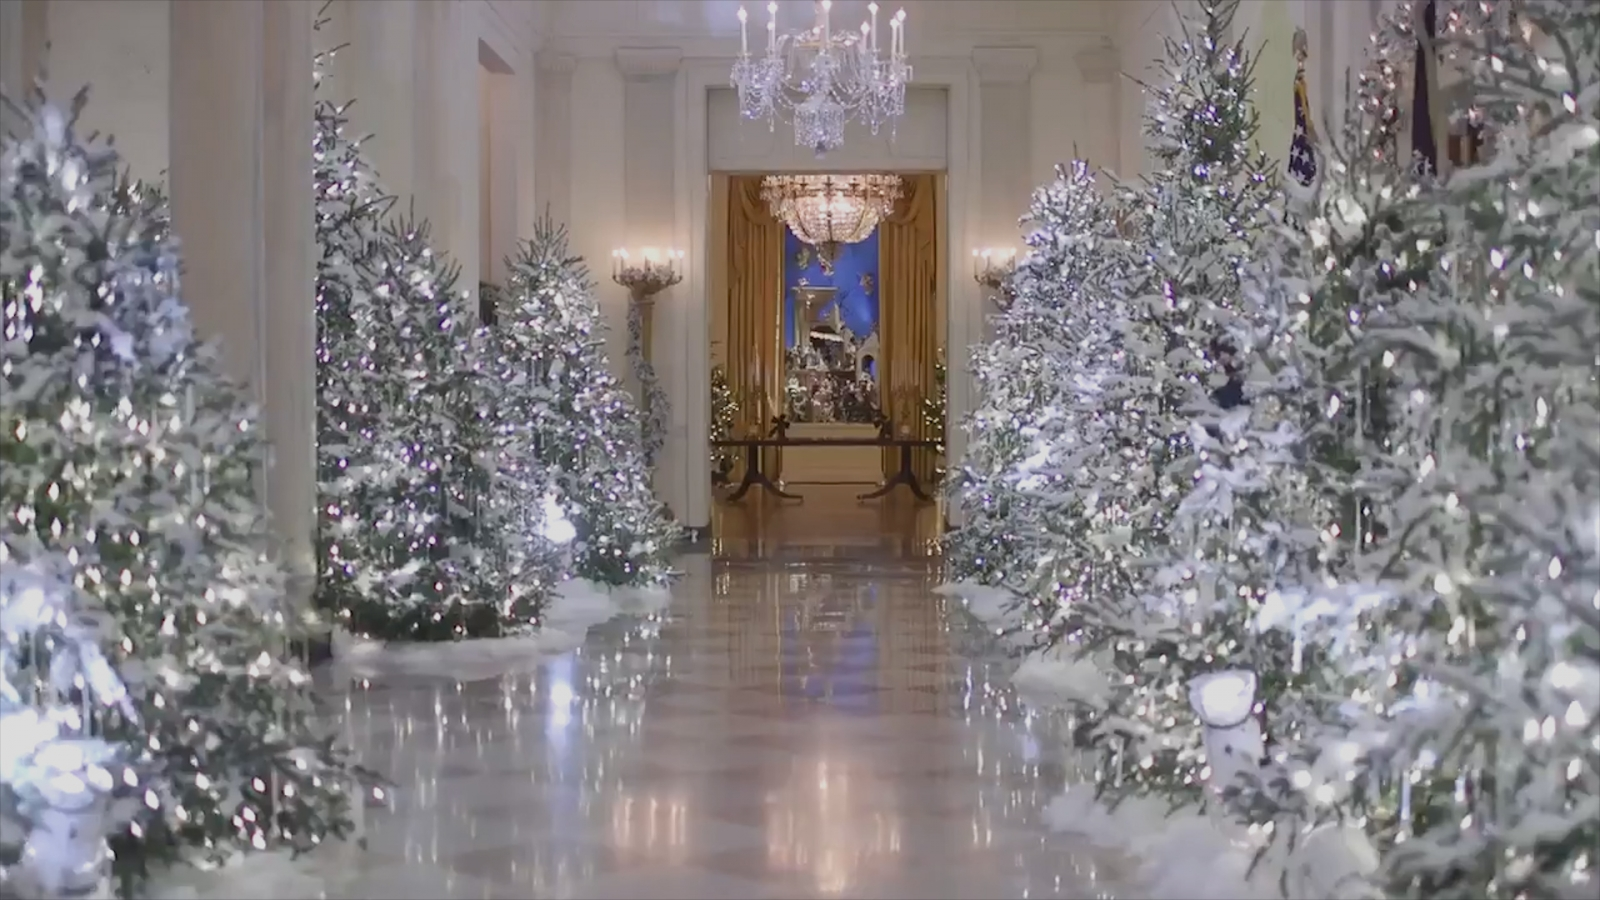 terrifying melania trump trolled over nightmarish christmas decorations at white house - Creepy Christmas Decorations